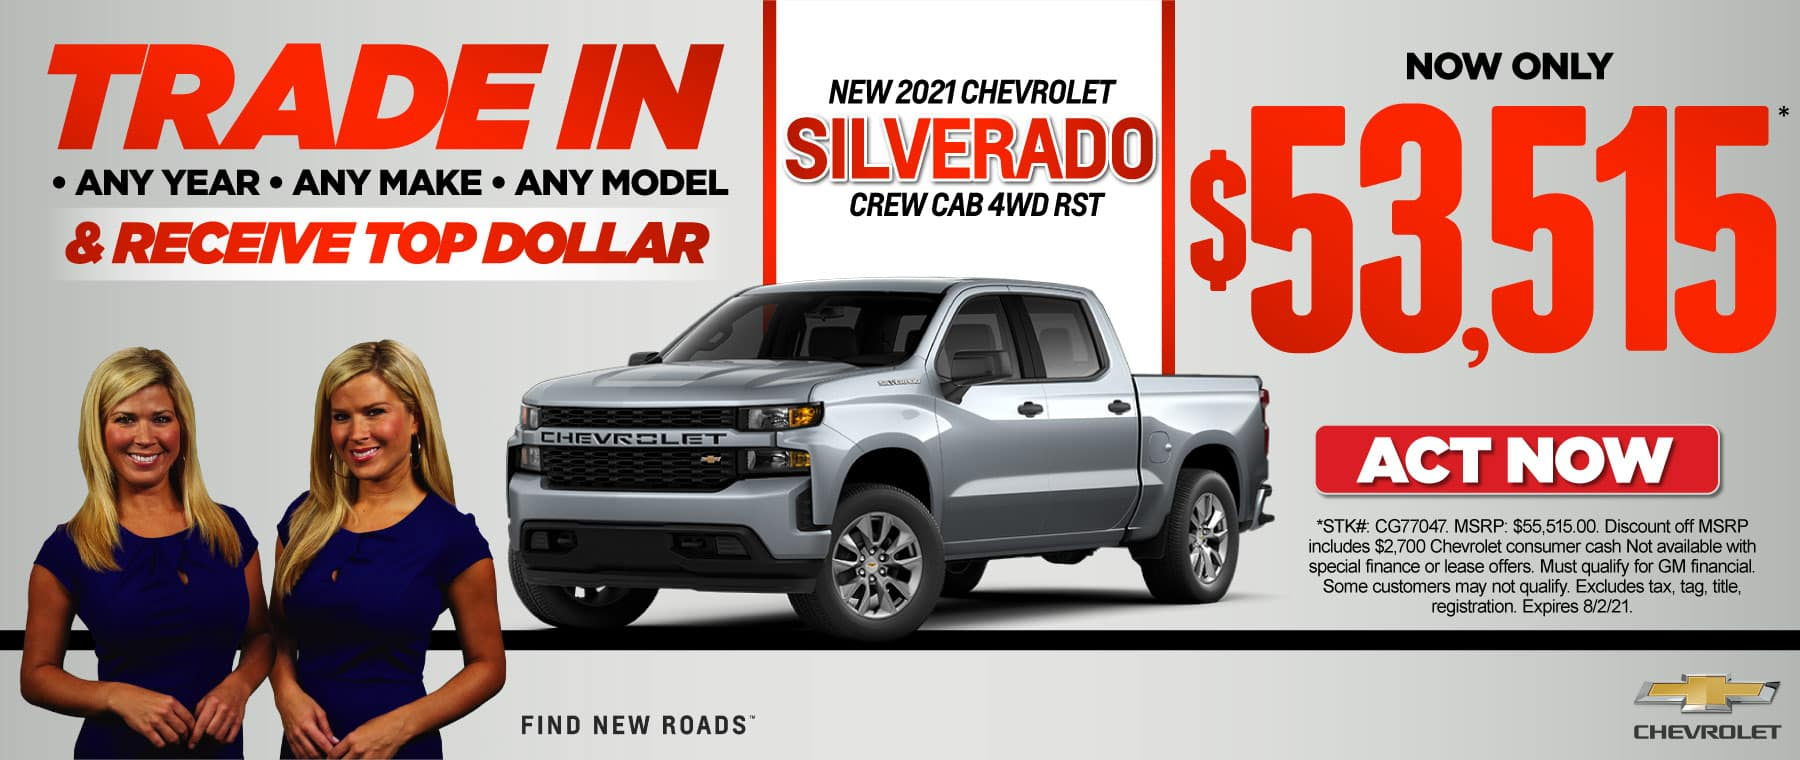 new 2021 Chevrolet Silverado Crew Cab RST now only $53,515. Act now.